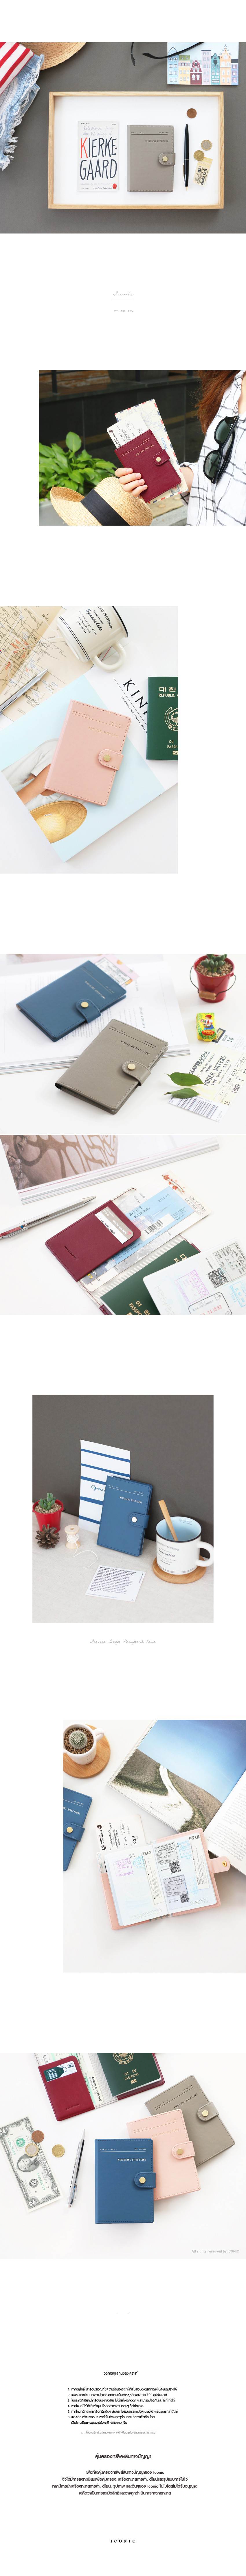 snap-passport-case-6.jpg